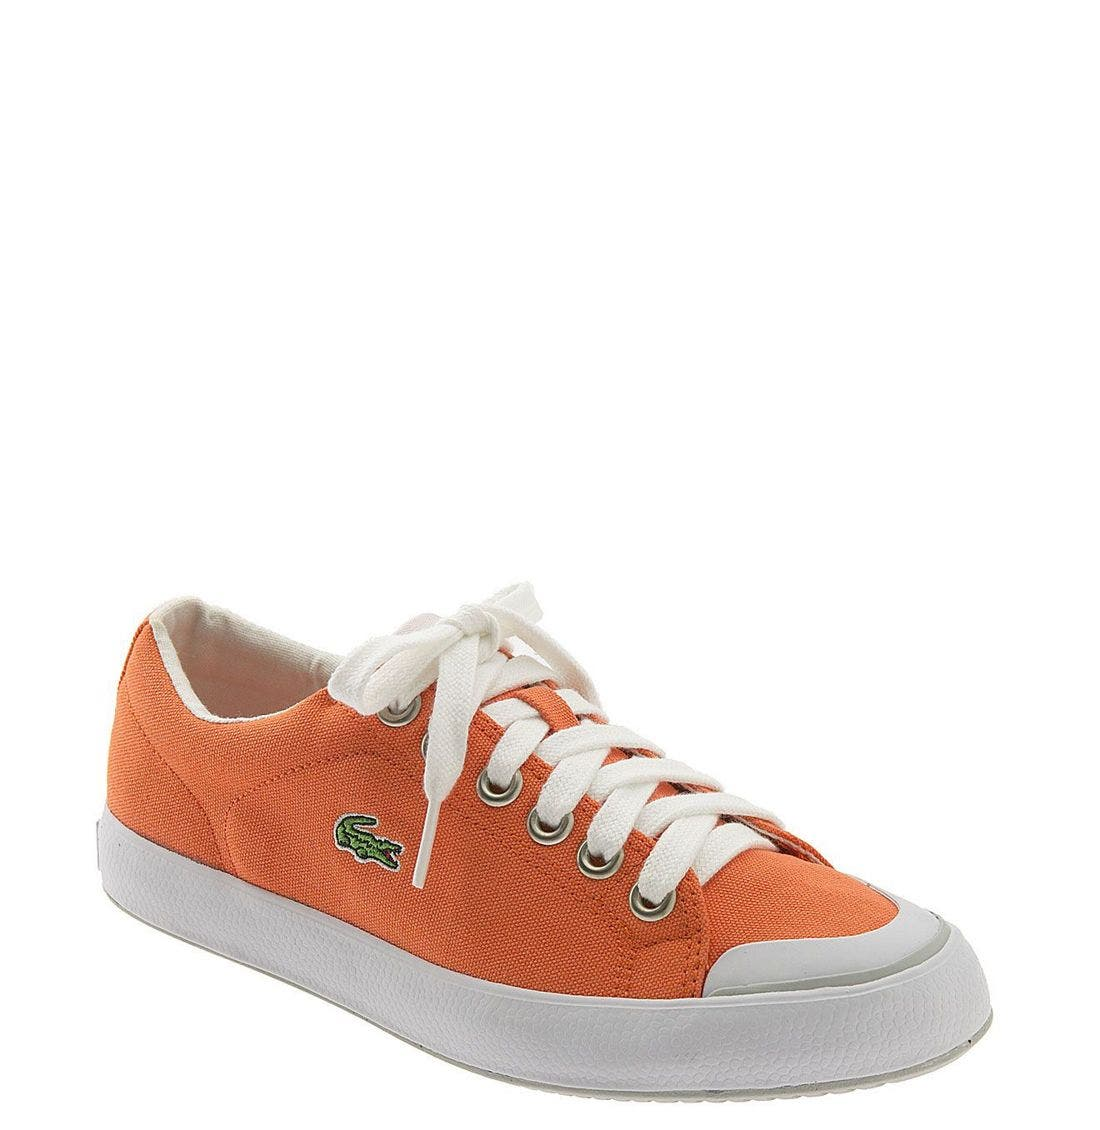 Alternate Image 1 Selected - Lacoste 'L33 Canvas' Sneaker (Women)